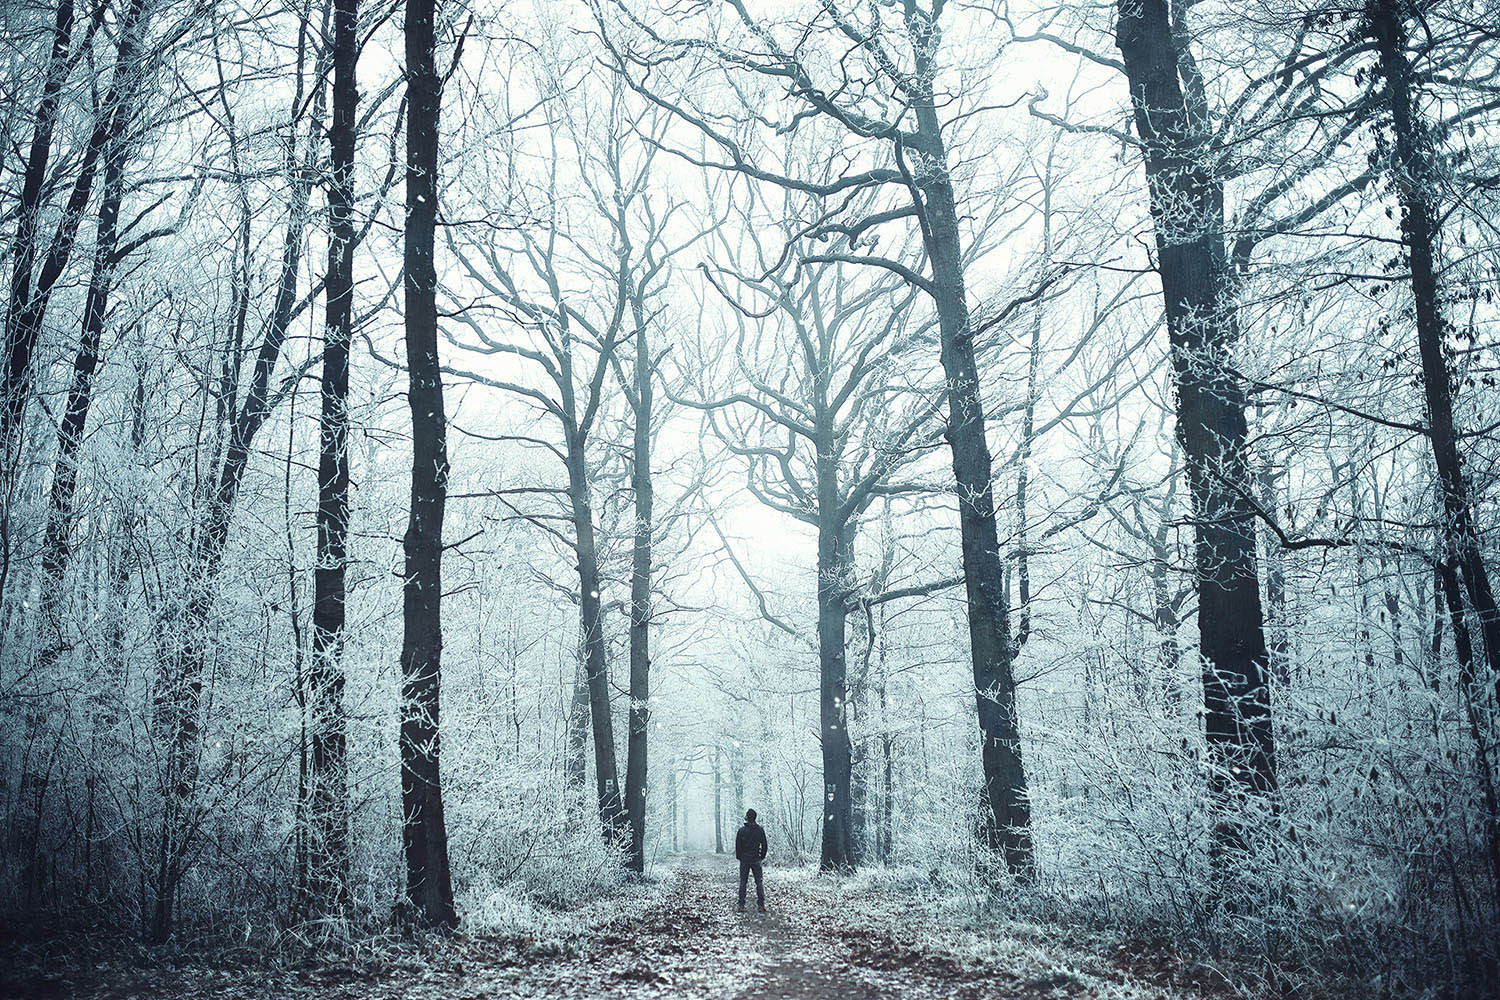 Raphaelle Monvoisin, The Crystal Path, winter forest